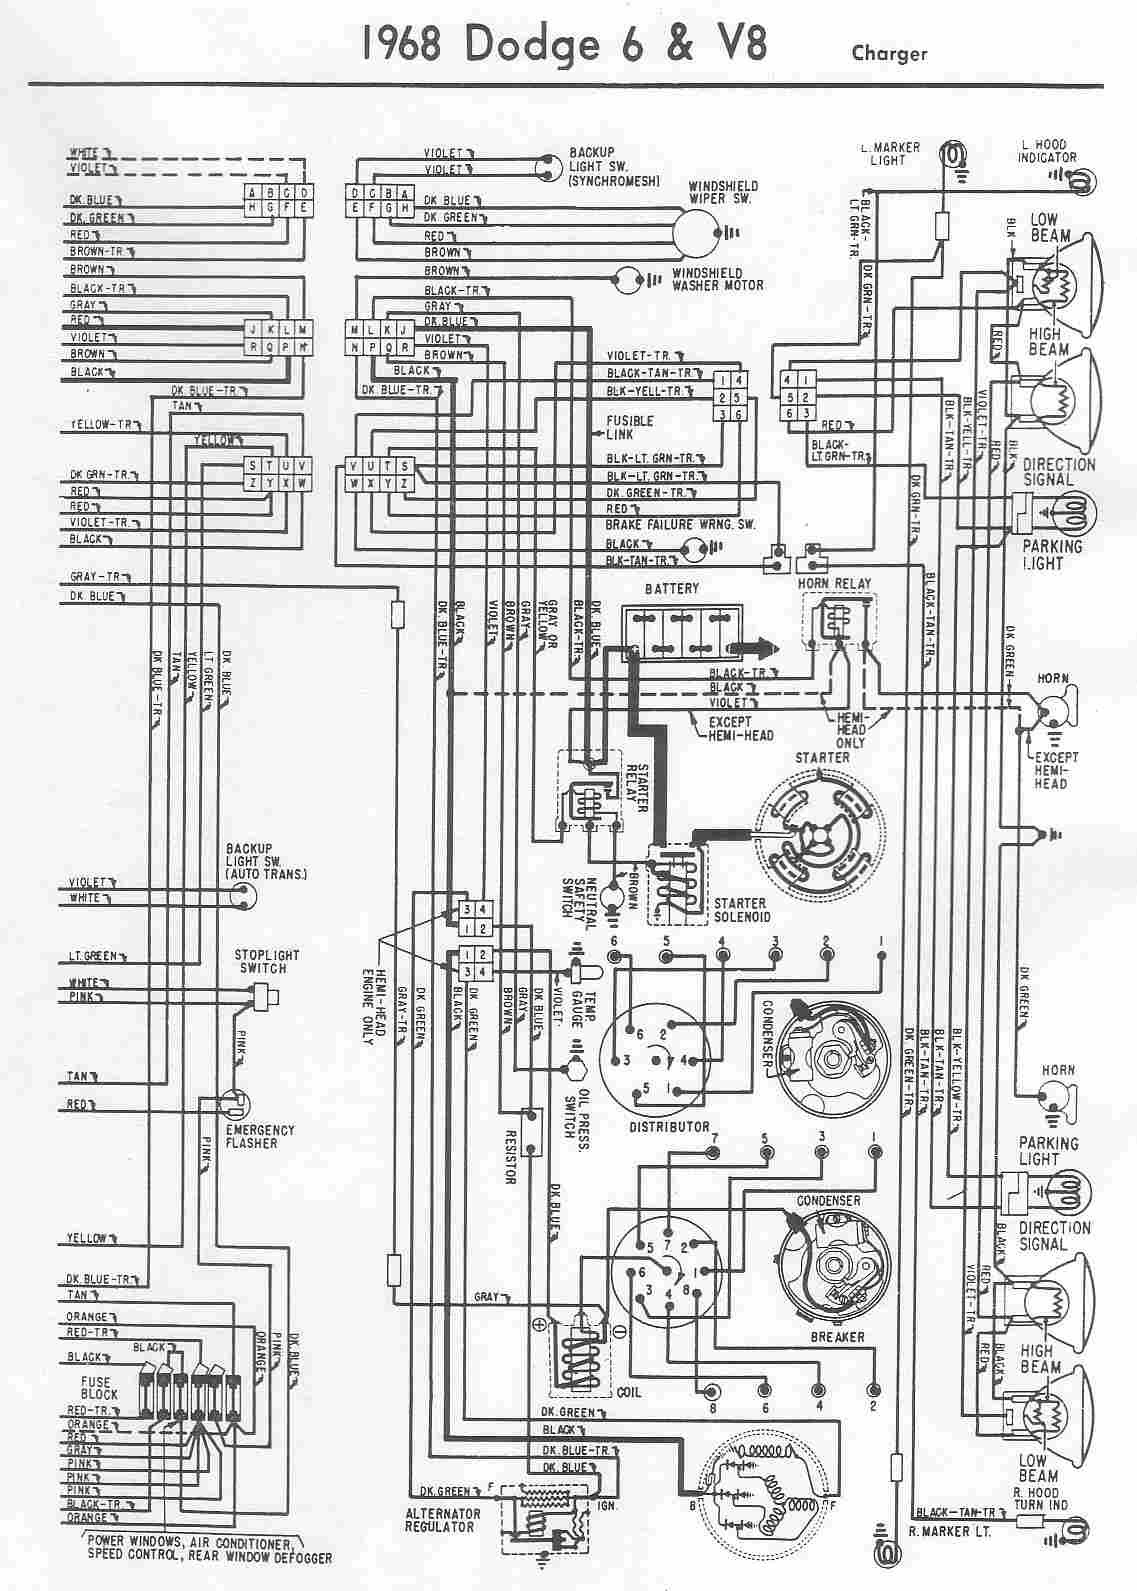 1990 Dodge Alternator Wiring Layout Diagrams 1991 Pickup Diagram 1968 Rh Aiandco Co Cummins 04 2500 Diesel